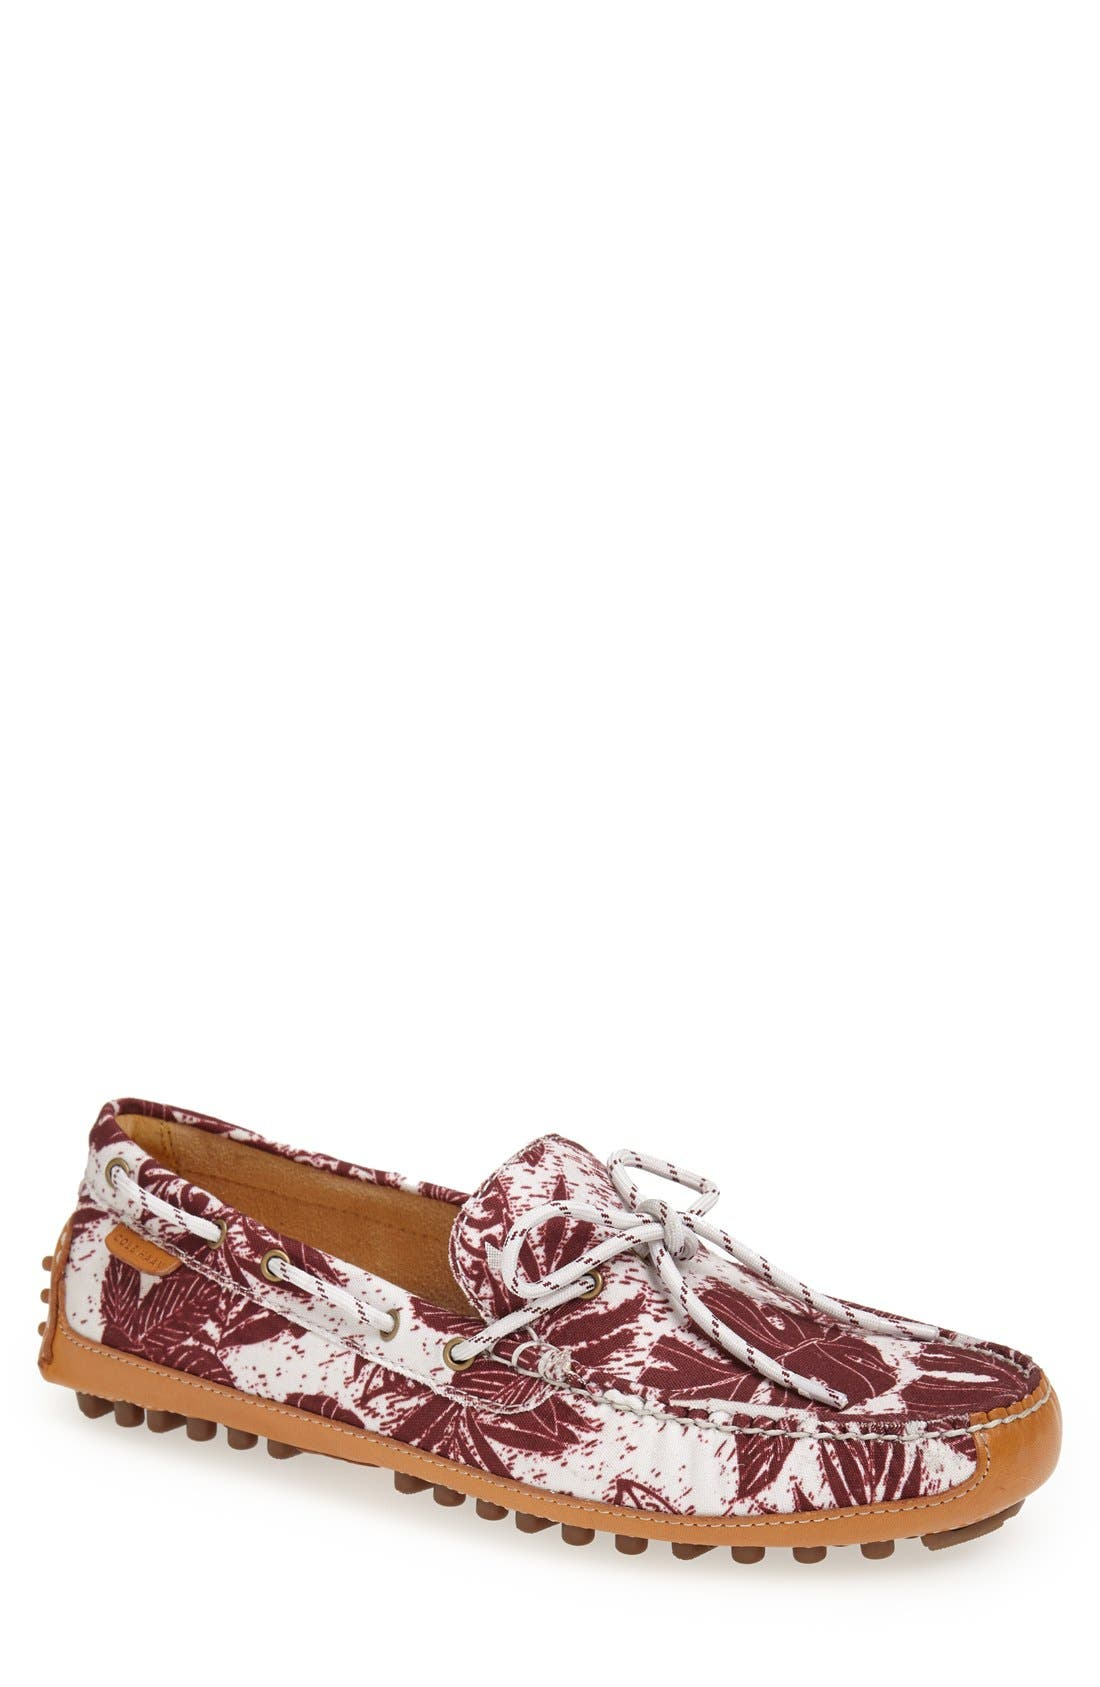 Alternate Image 1 Selected - Cole Haan 'Grant' Driving Shoe